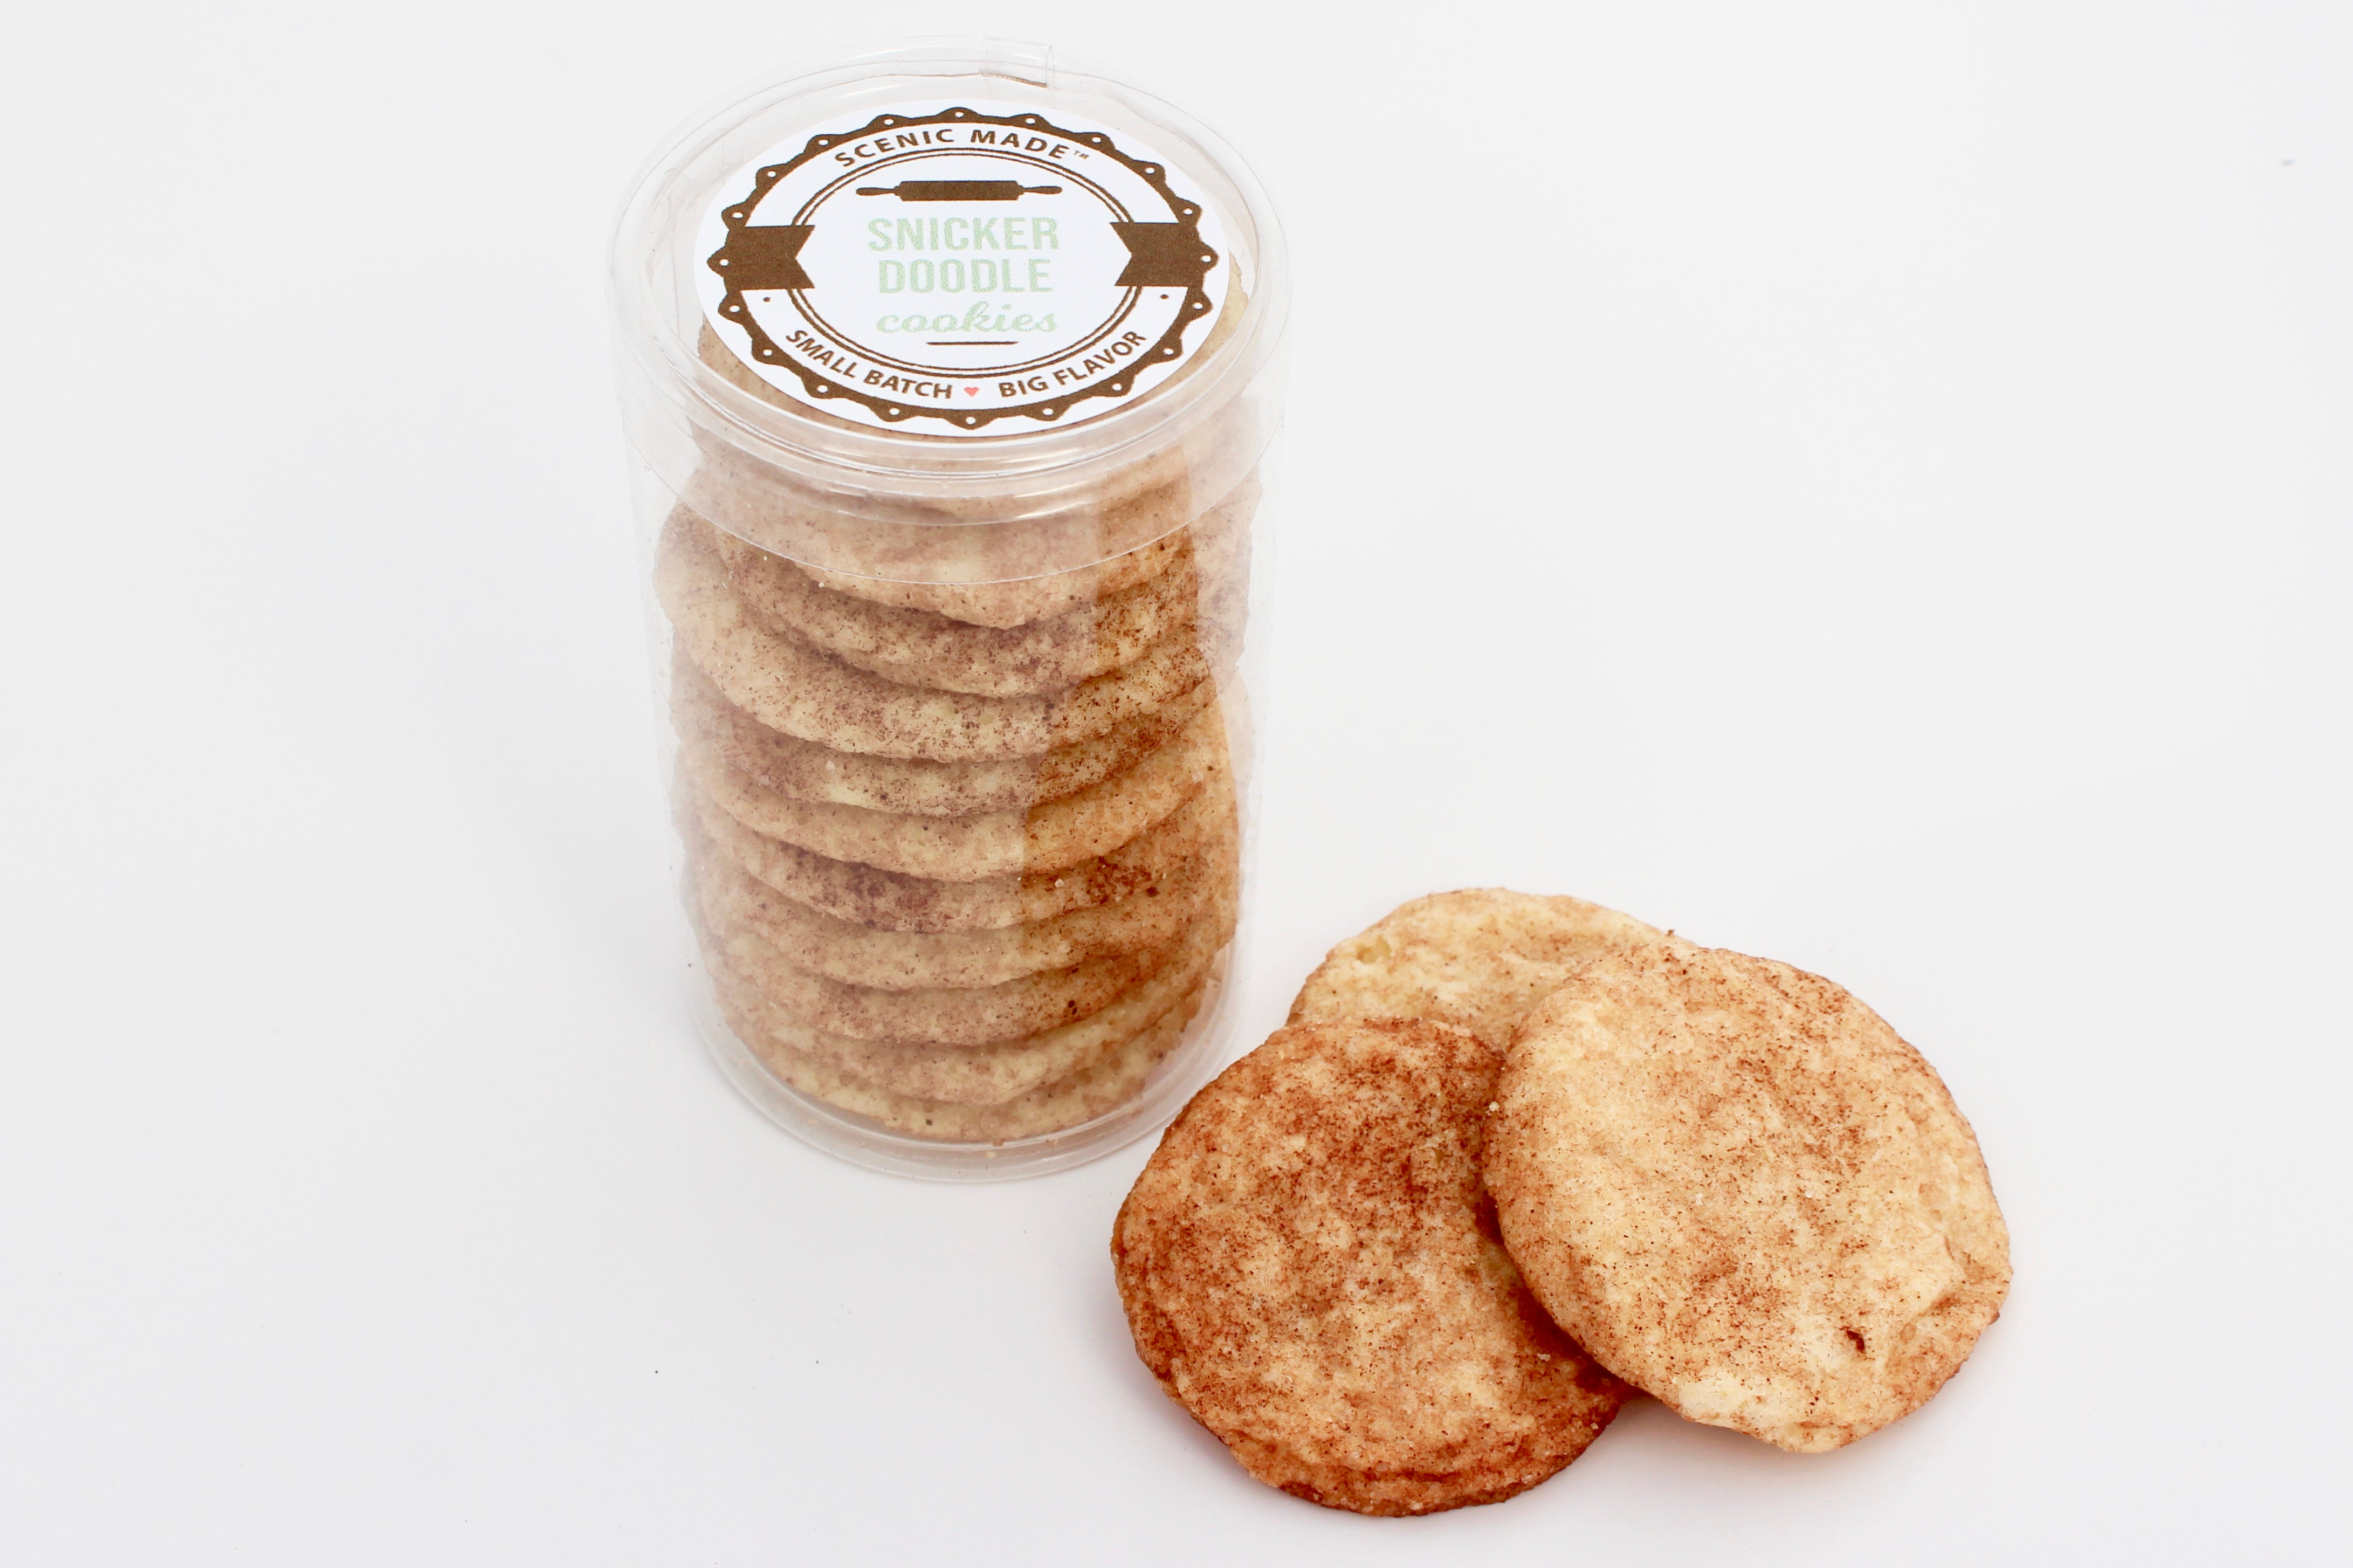 Snickerdoodle cookies.  10 cookies stacked in a clear, food safe container with an attractive table on the top.